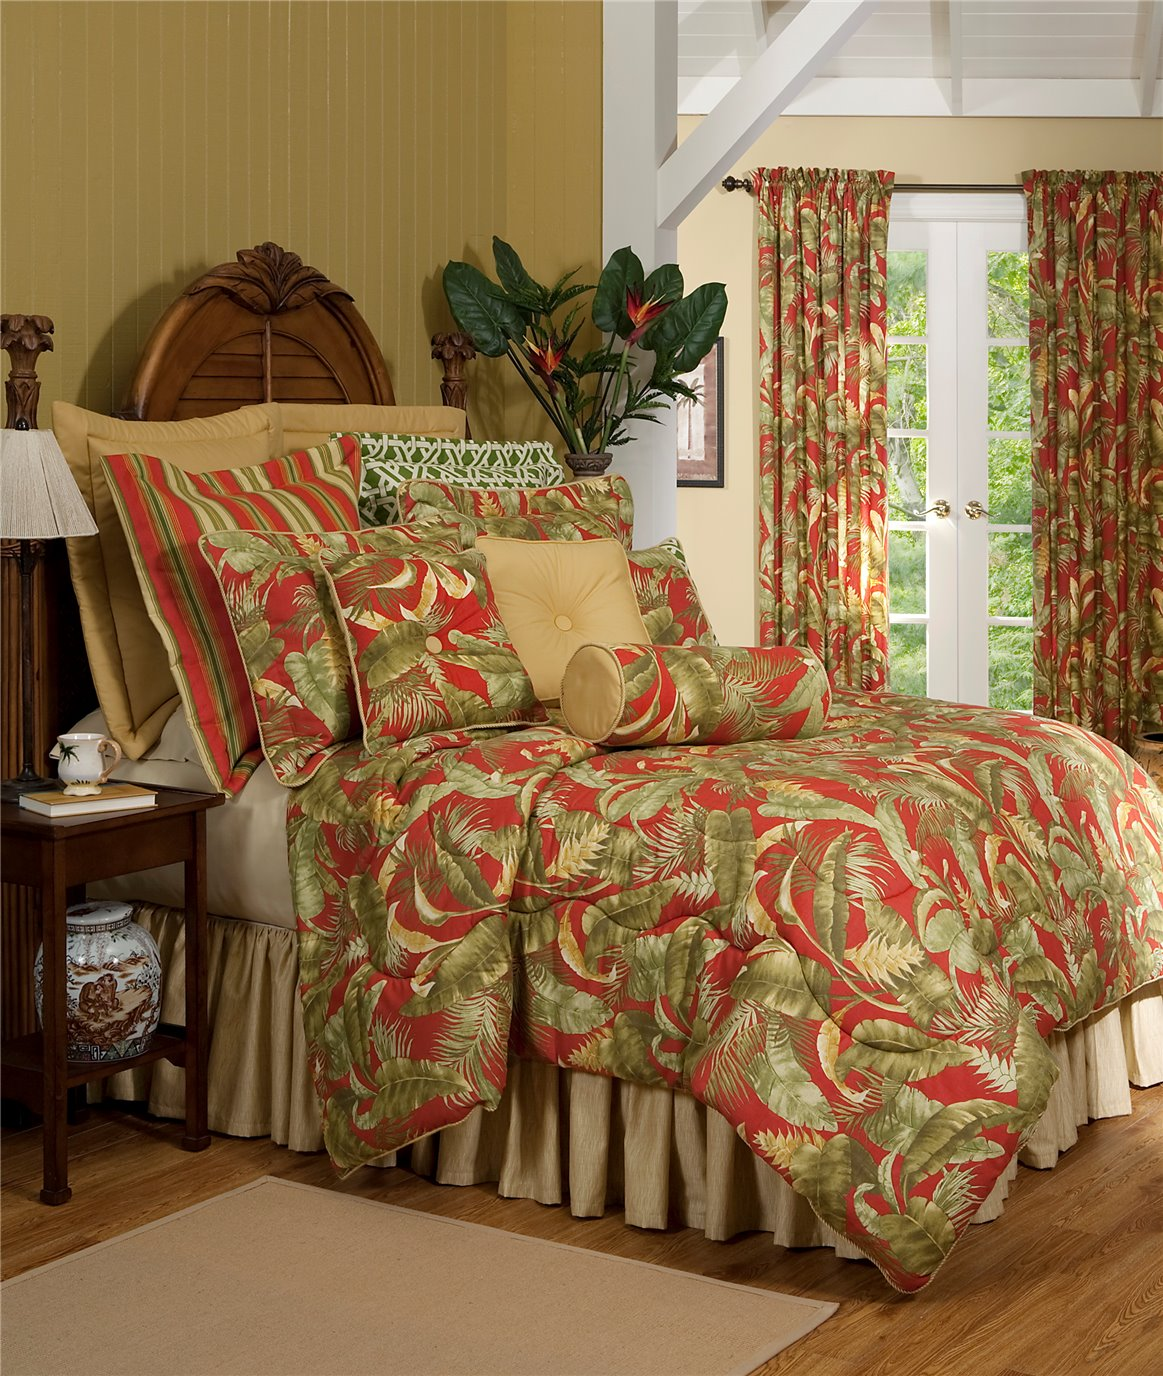 Captiva King Thomasville Comforter